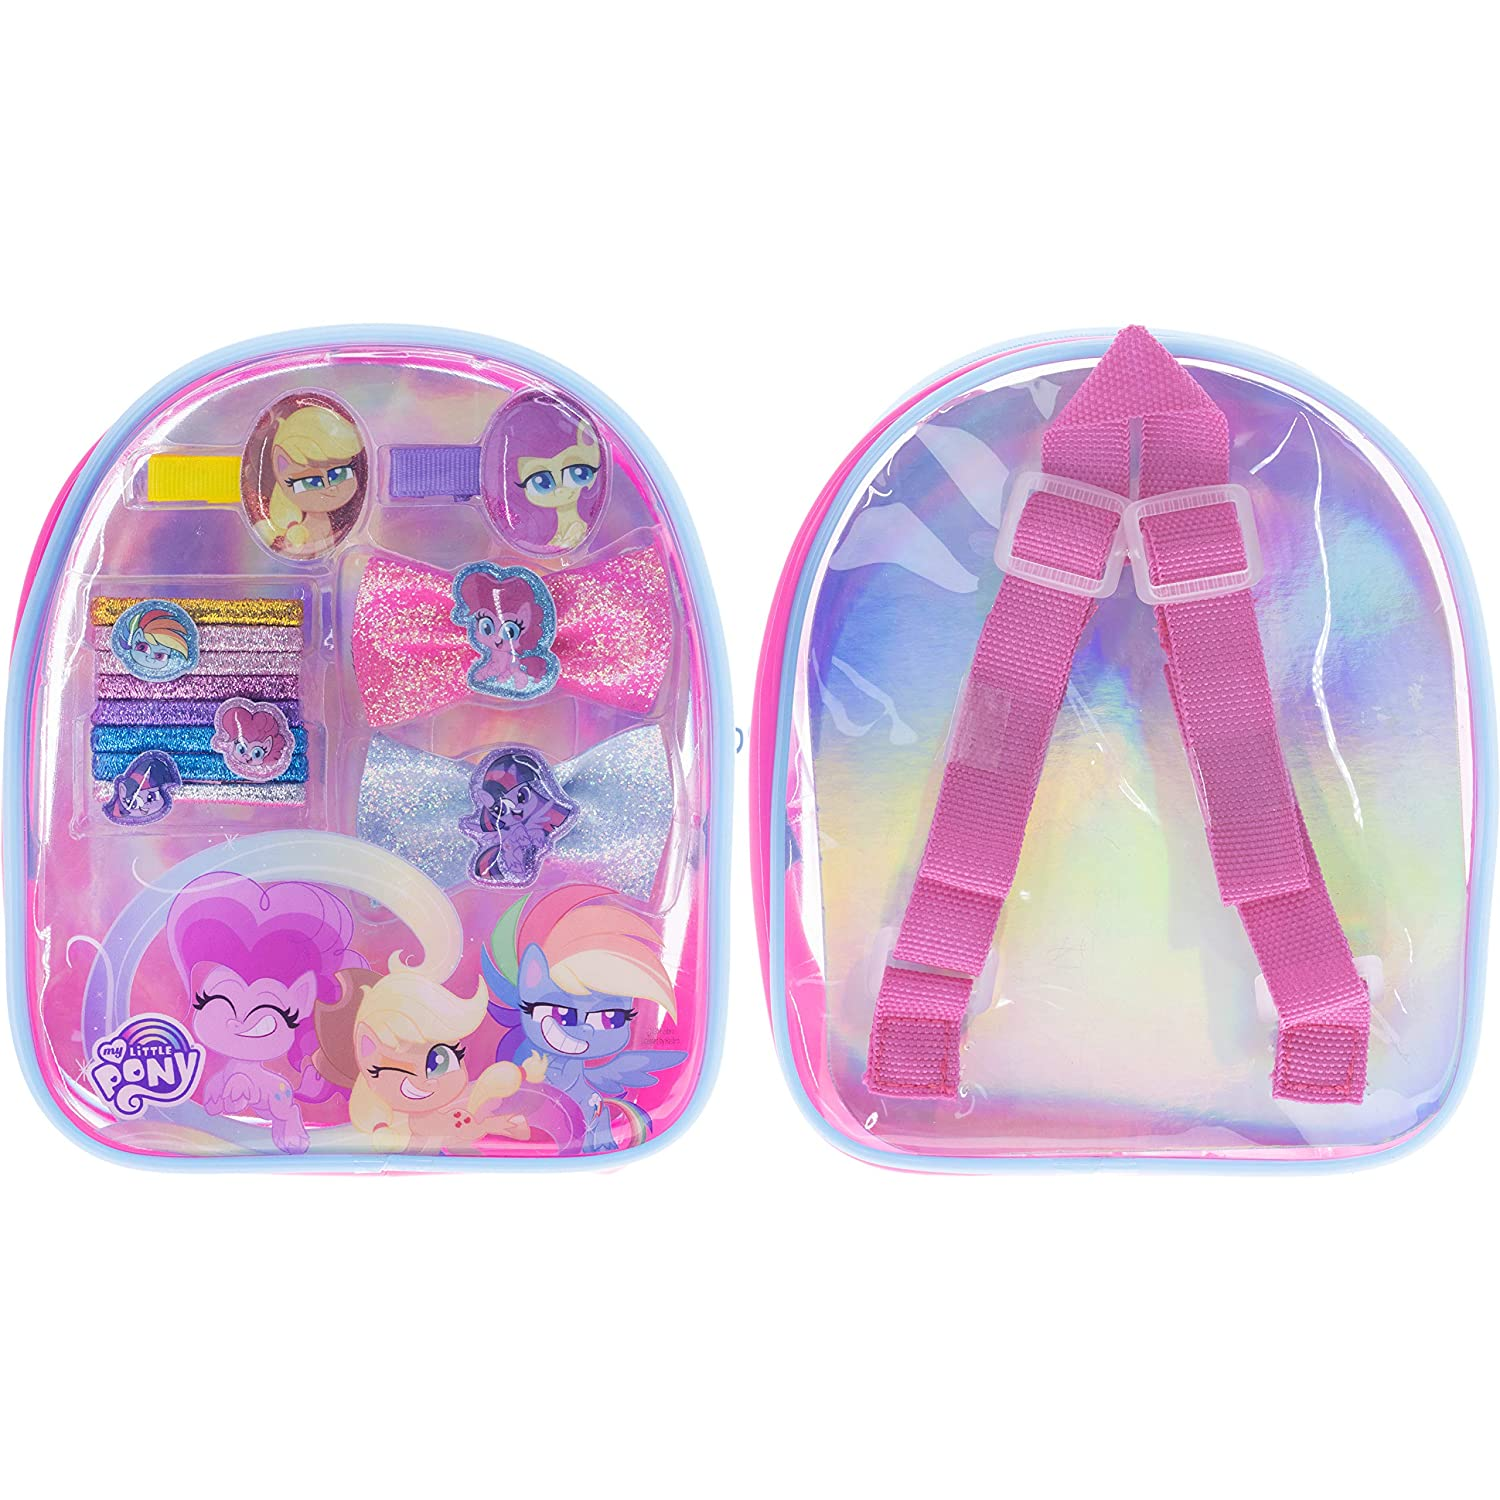 MLP: PL Miniature Hair Accessory Backpack 2